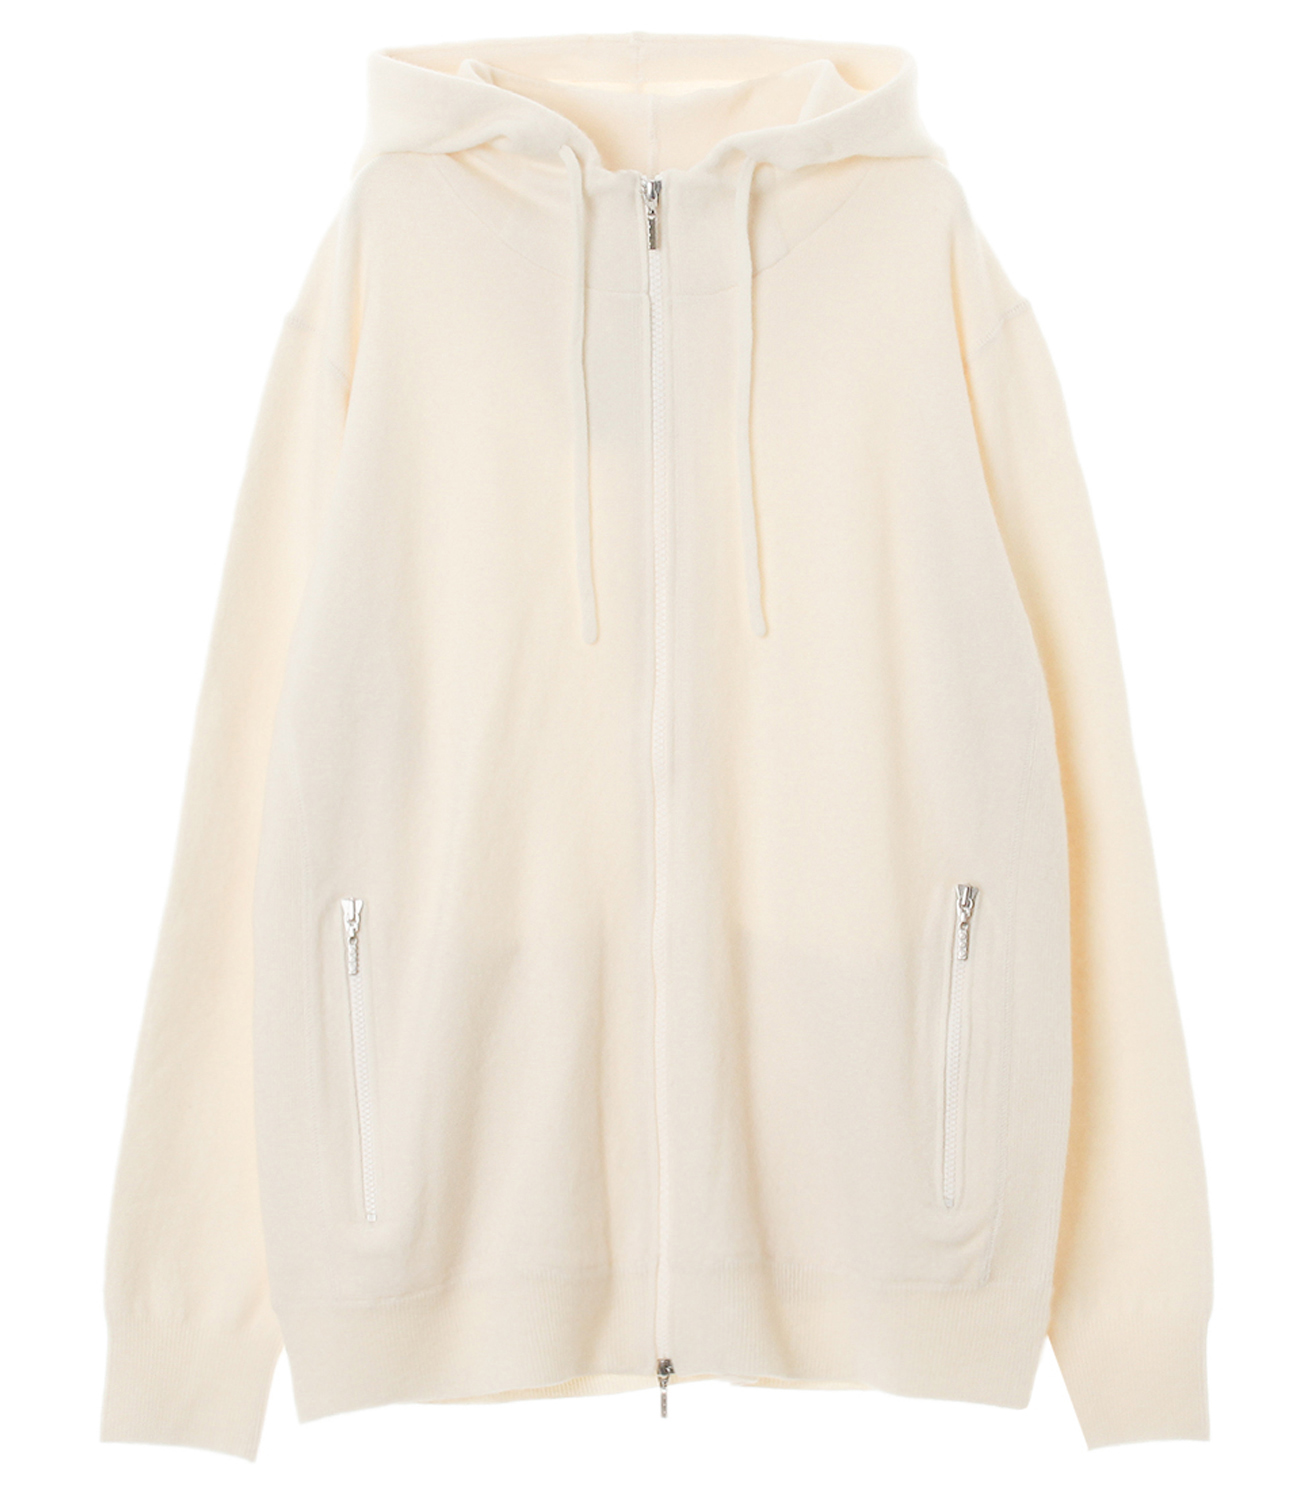 Men's tasmania wool zip parka 詳細画像 off white 1